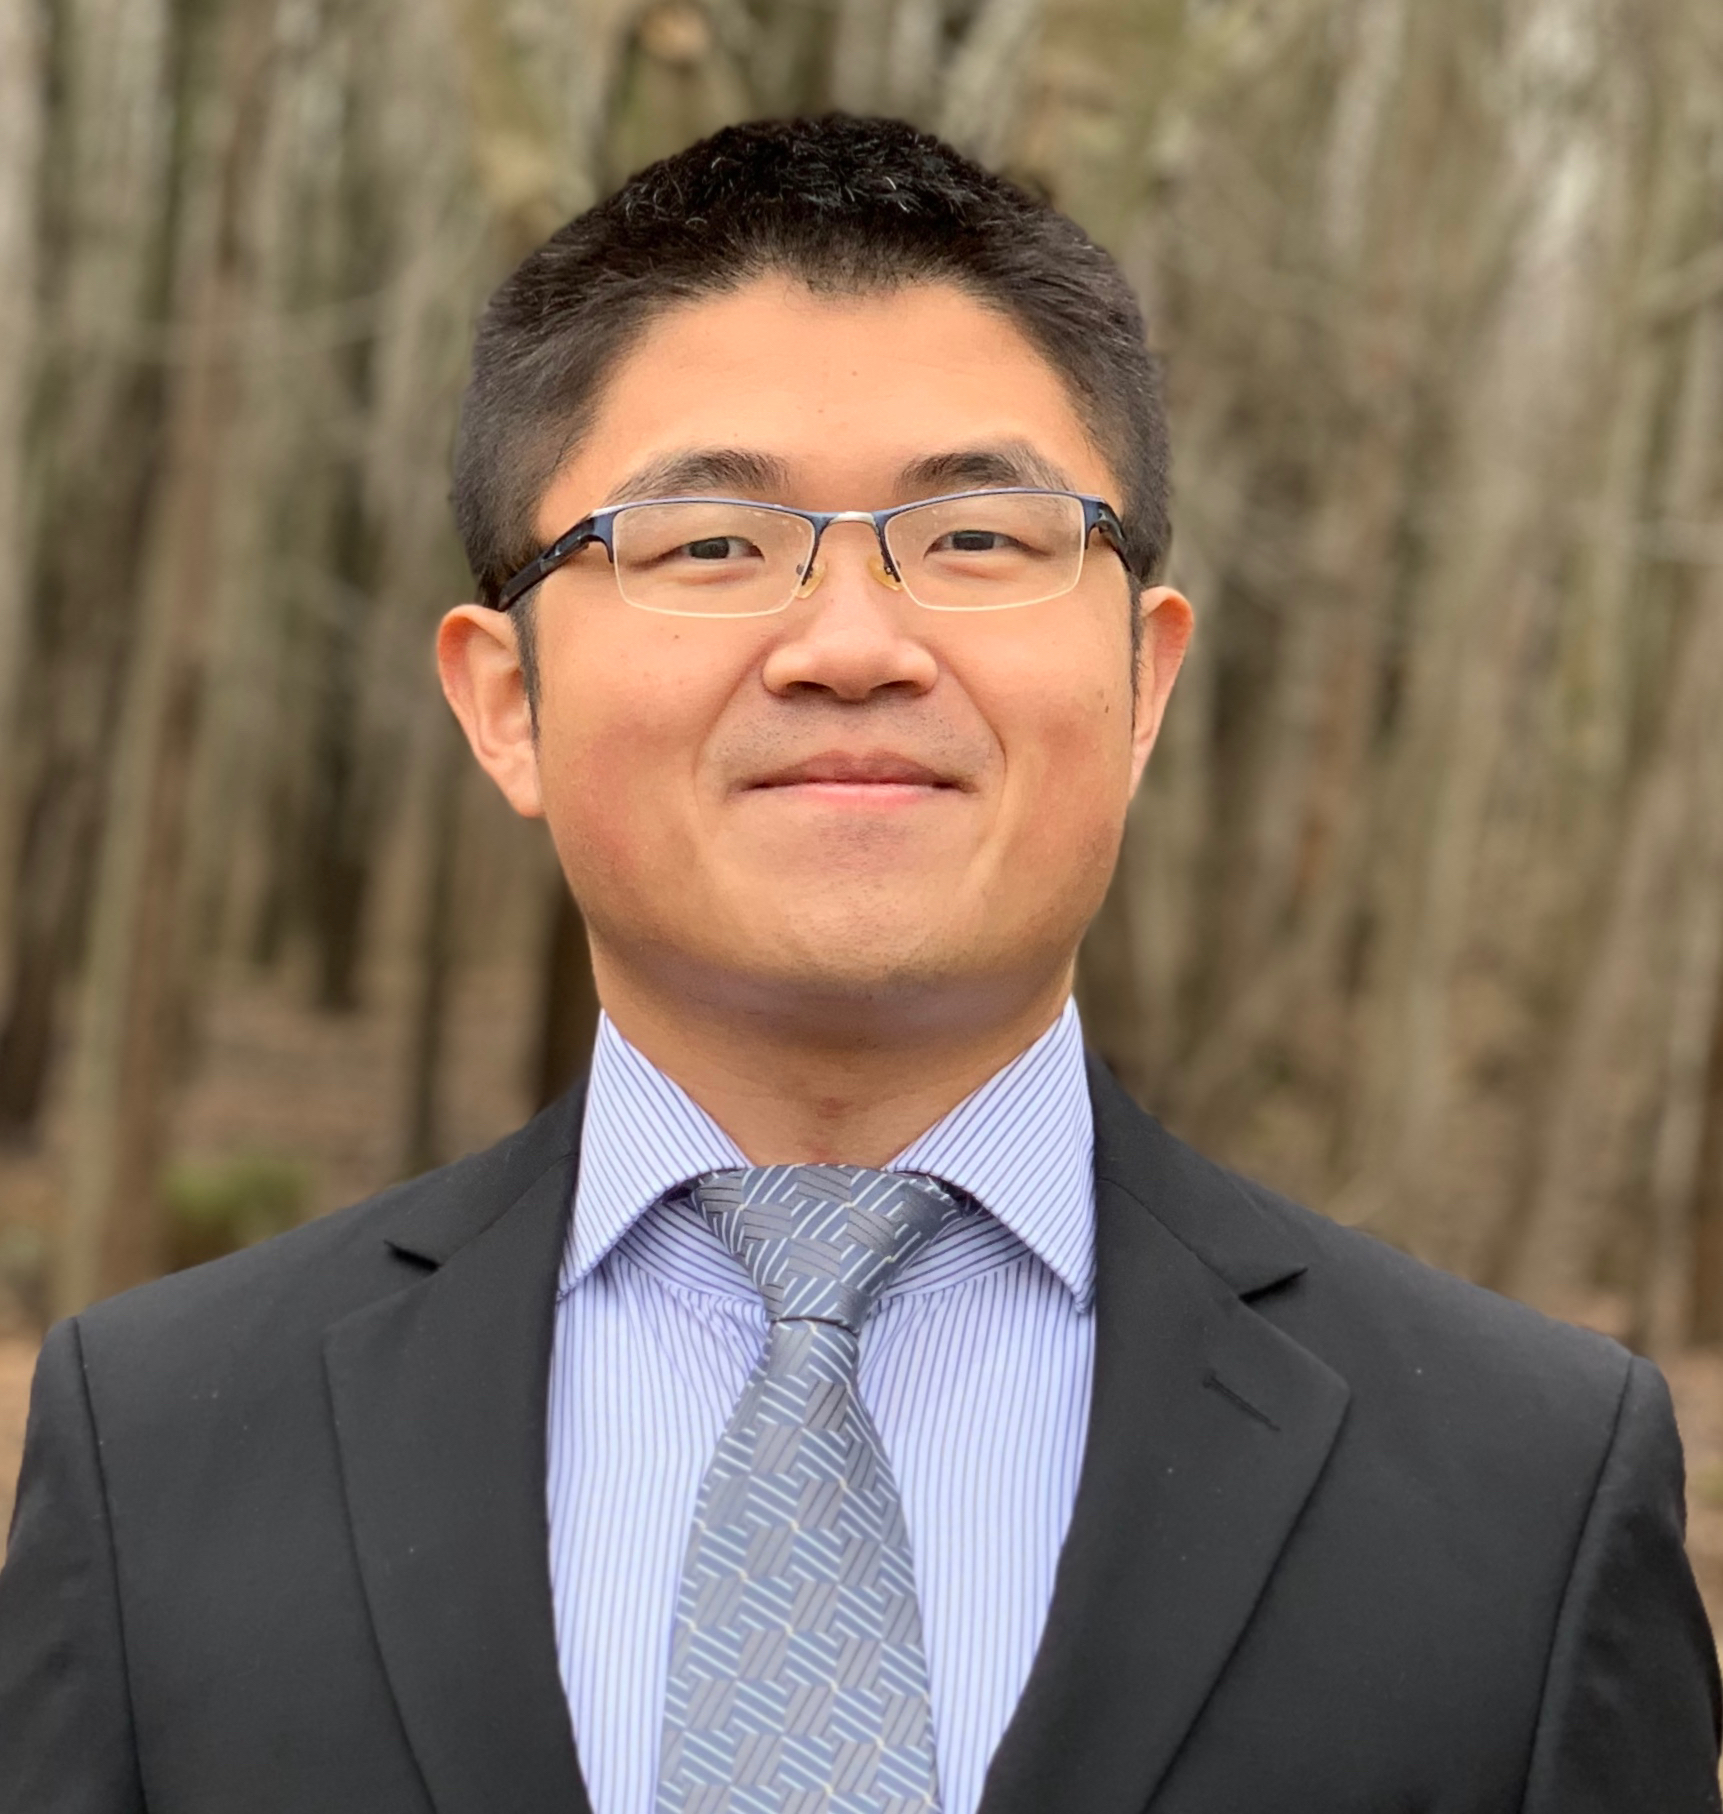 Min Ye, currently a postdoctoral researcher at Princeton University.